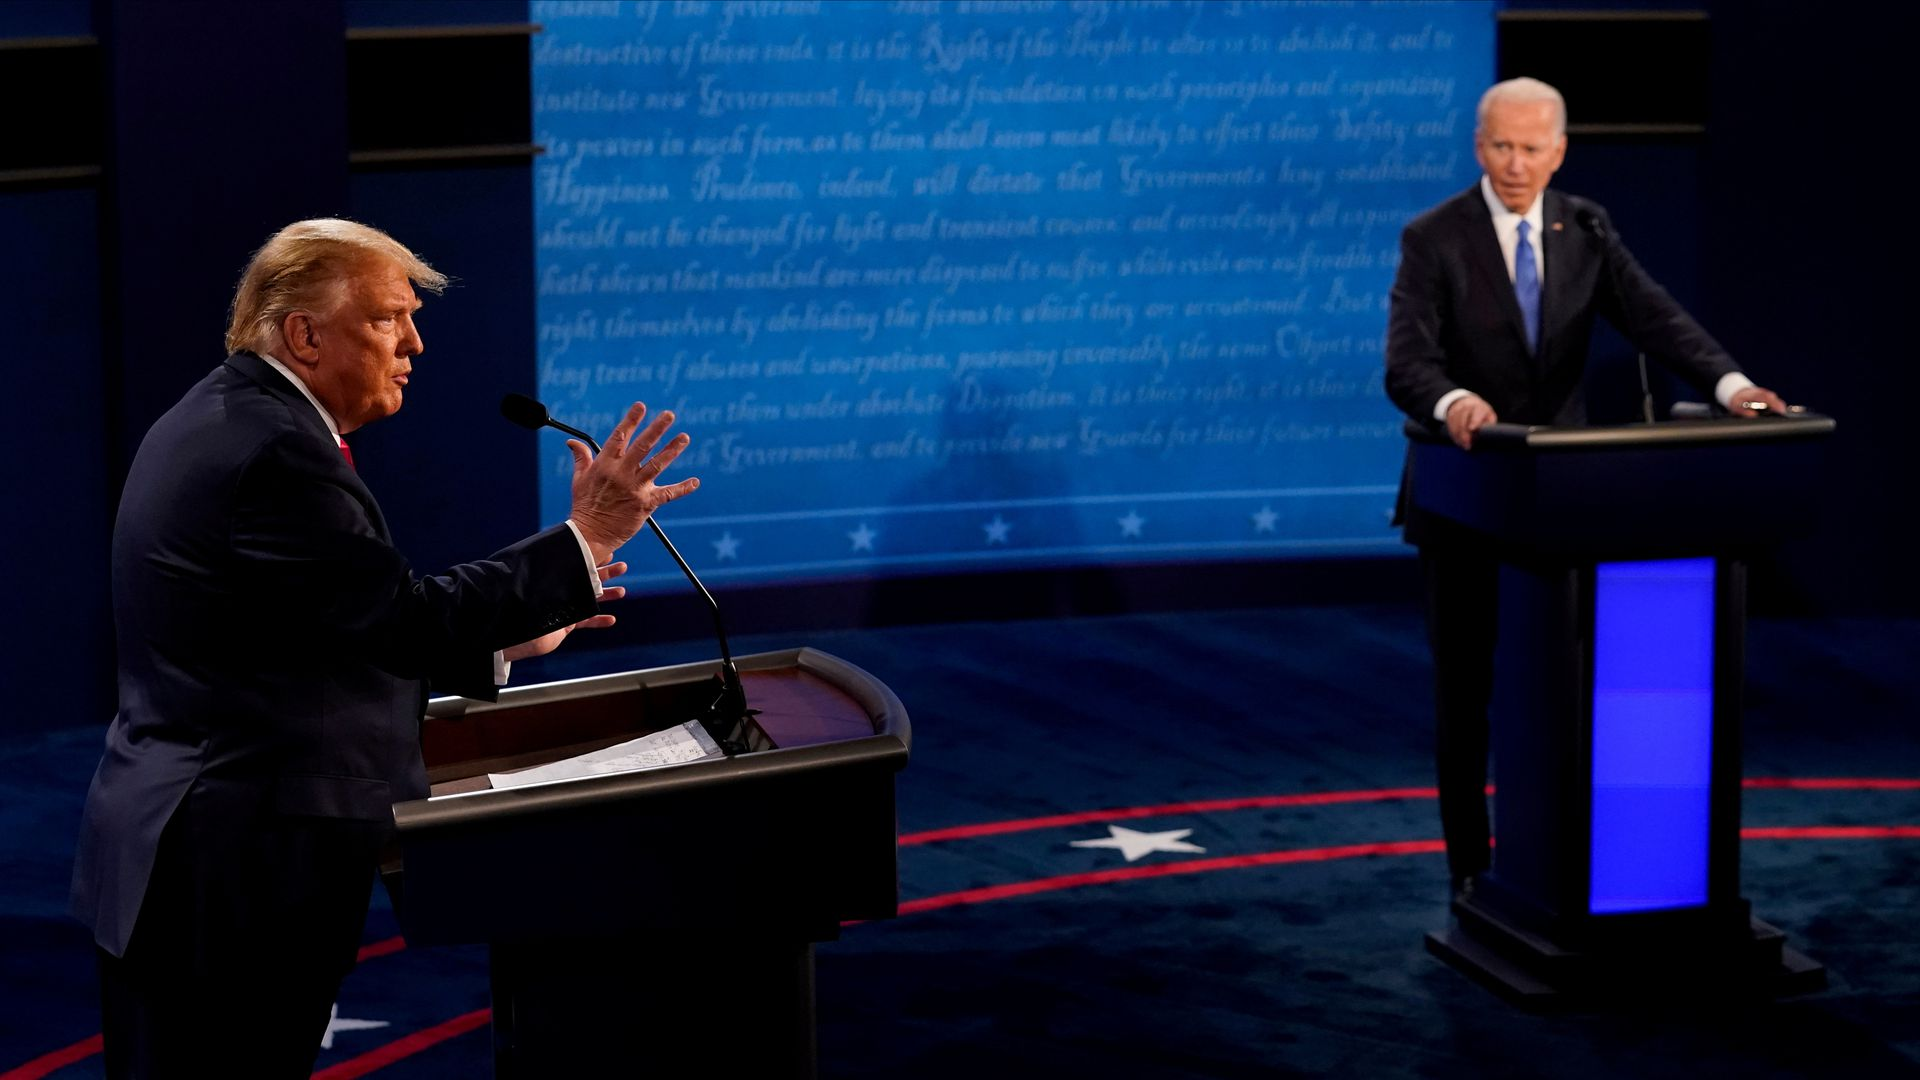 The Democratic debate will take place at the Paris Theater in Las Vegas on Wednesday.